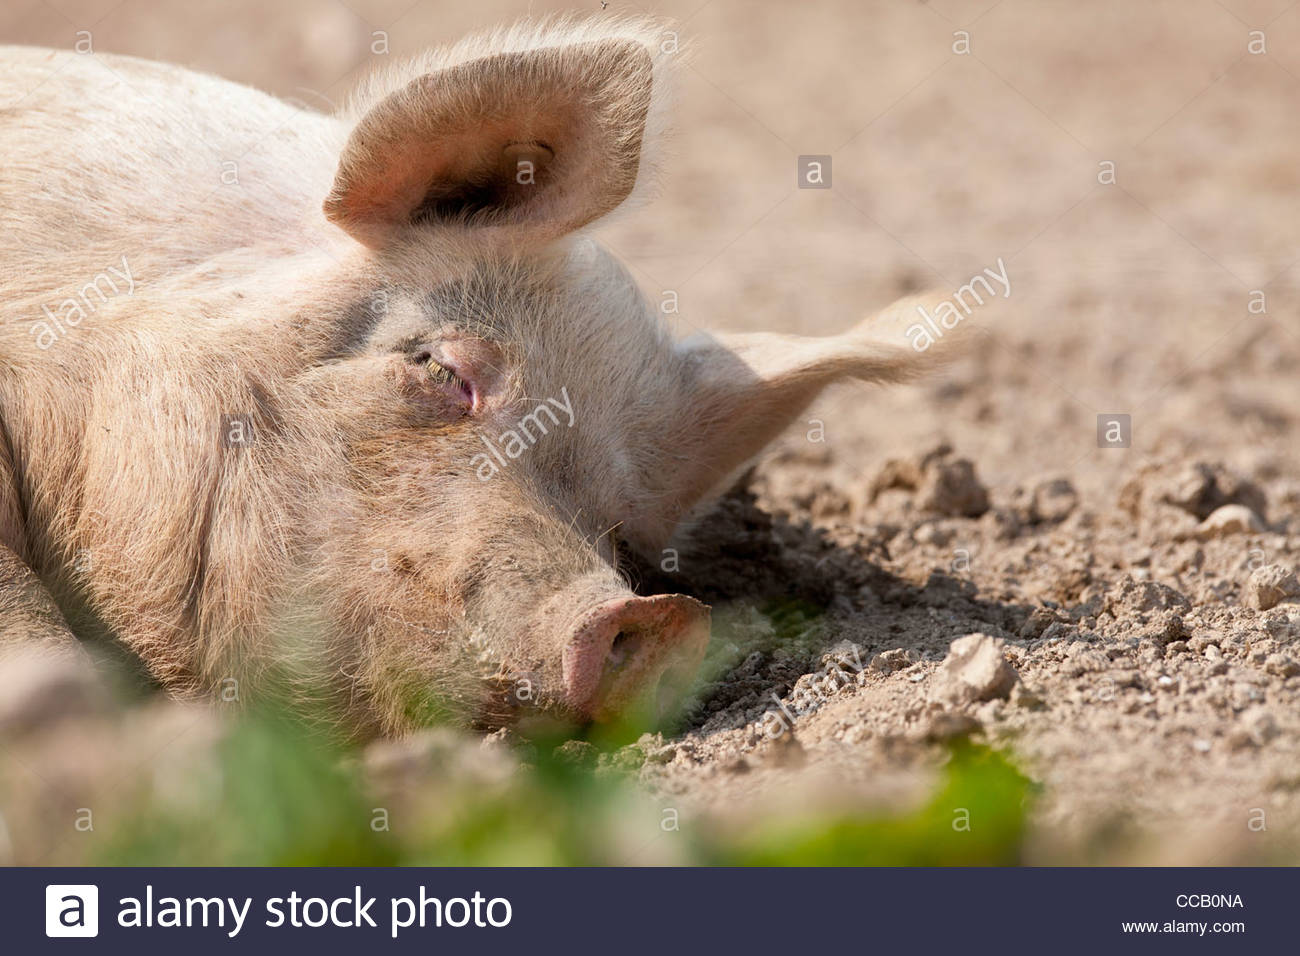 Tranquil pig sleeping in dirt - Stock Image